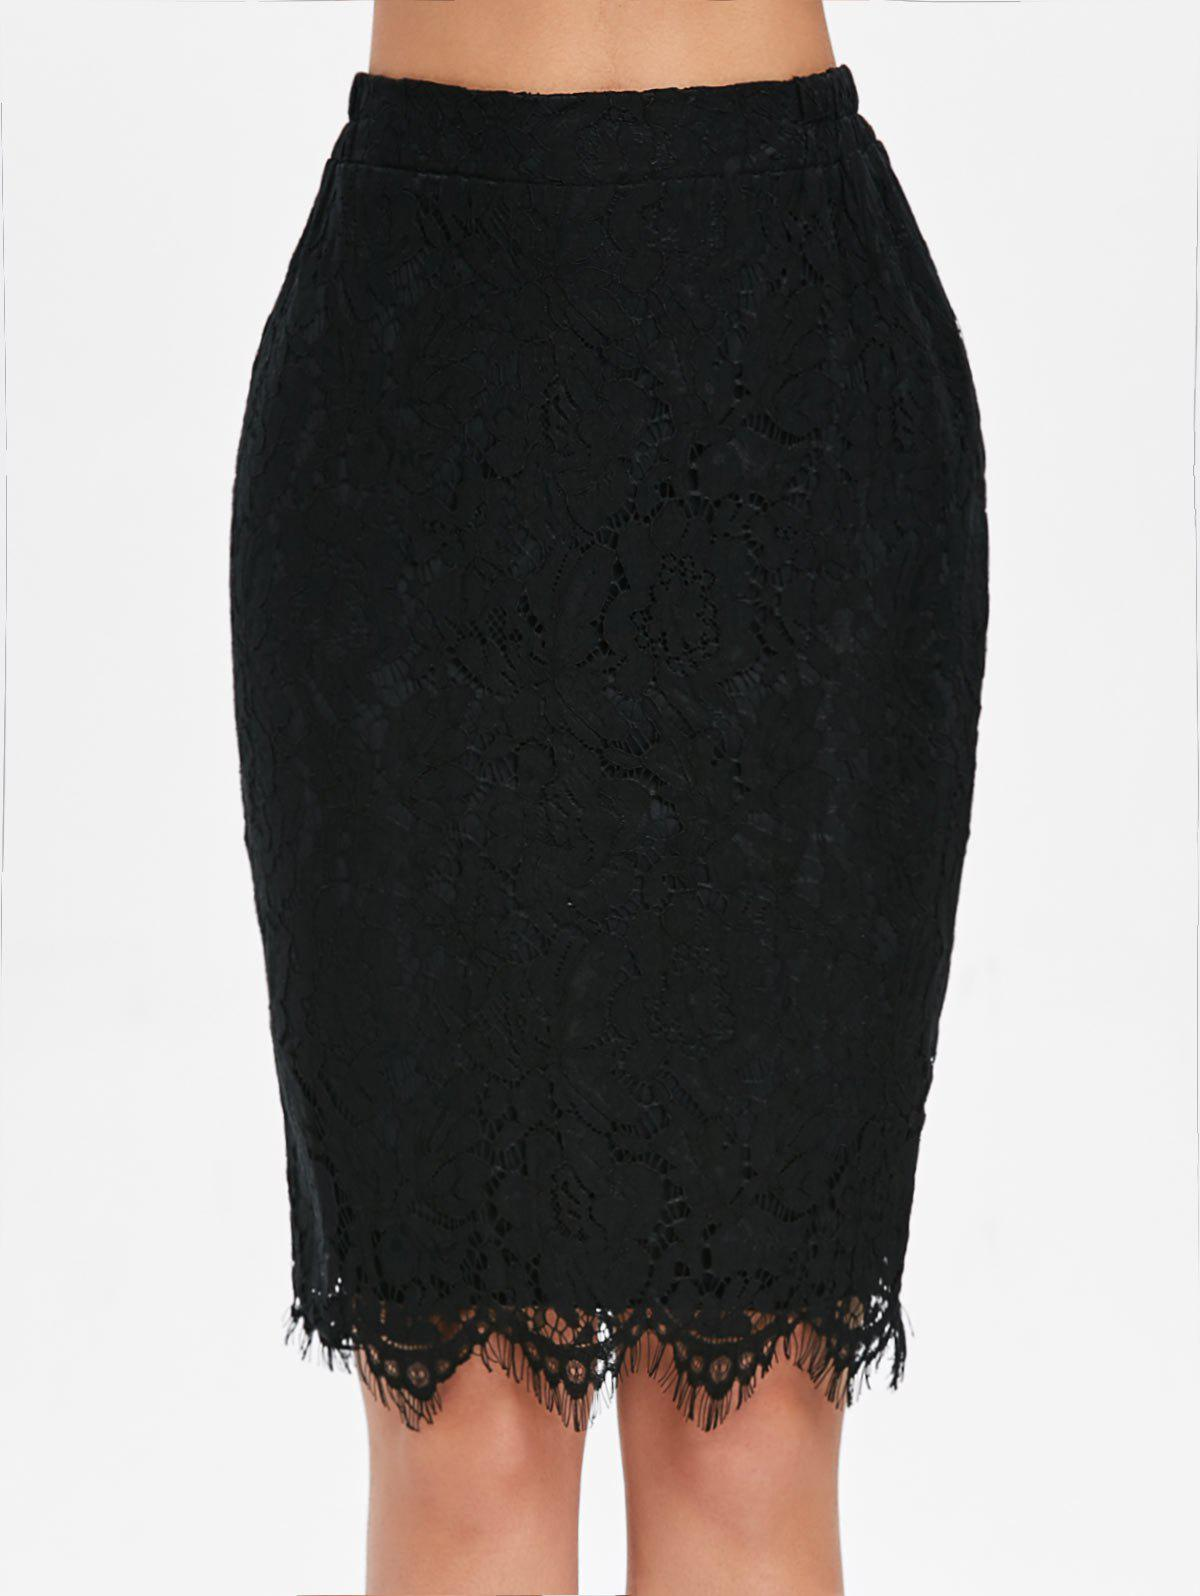 New Eyelash Lace Fitted Skirt